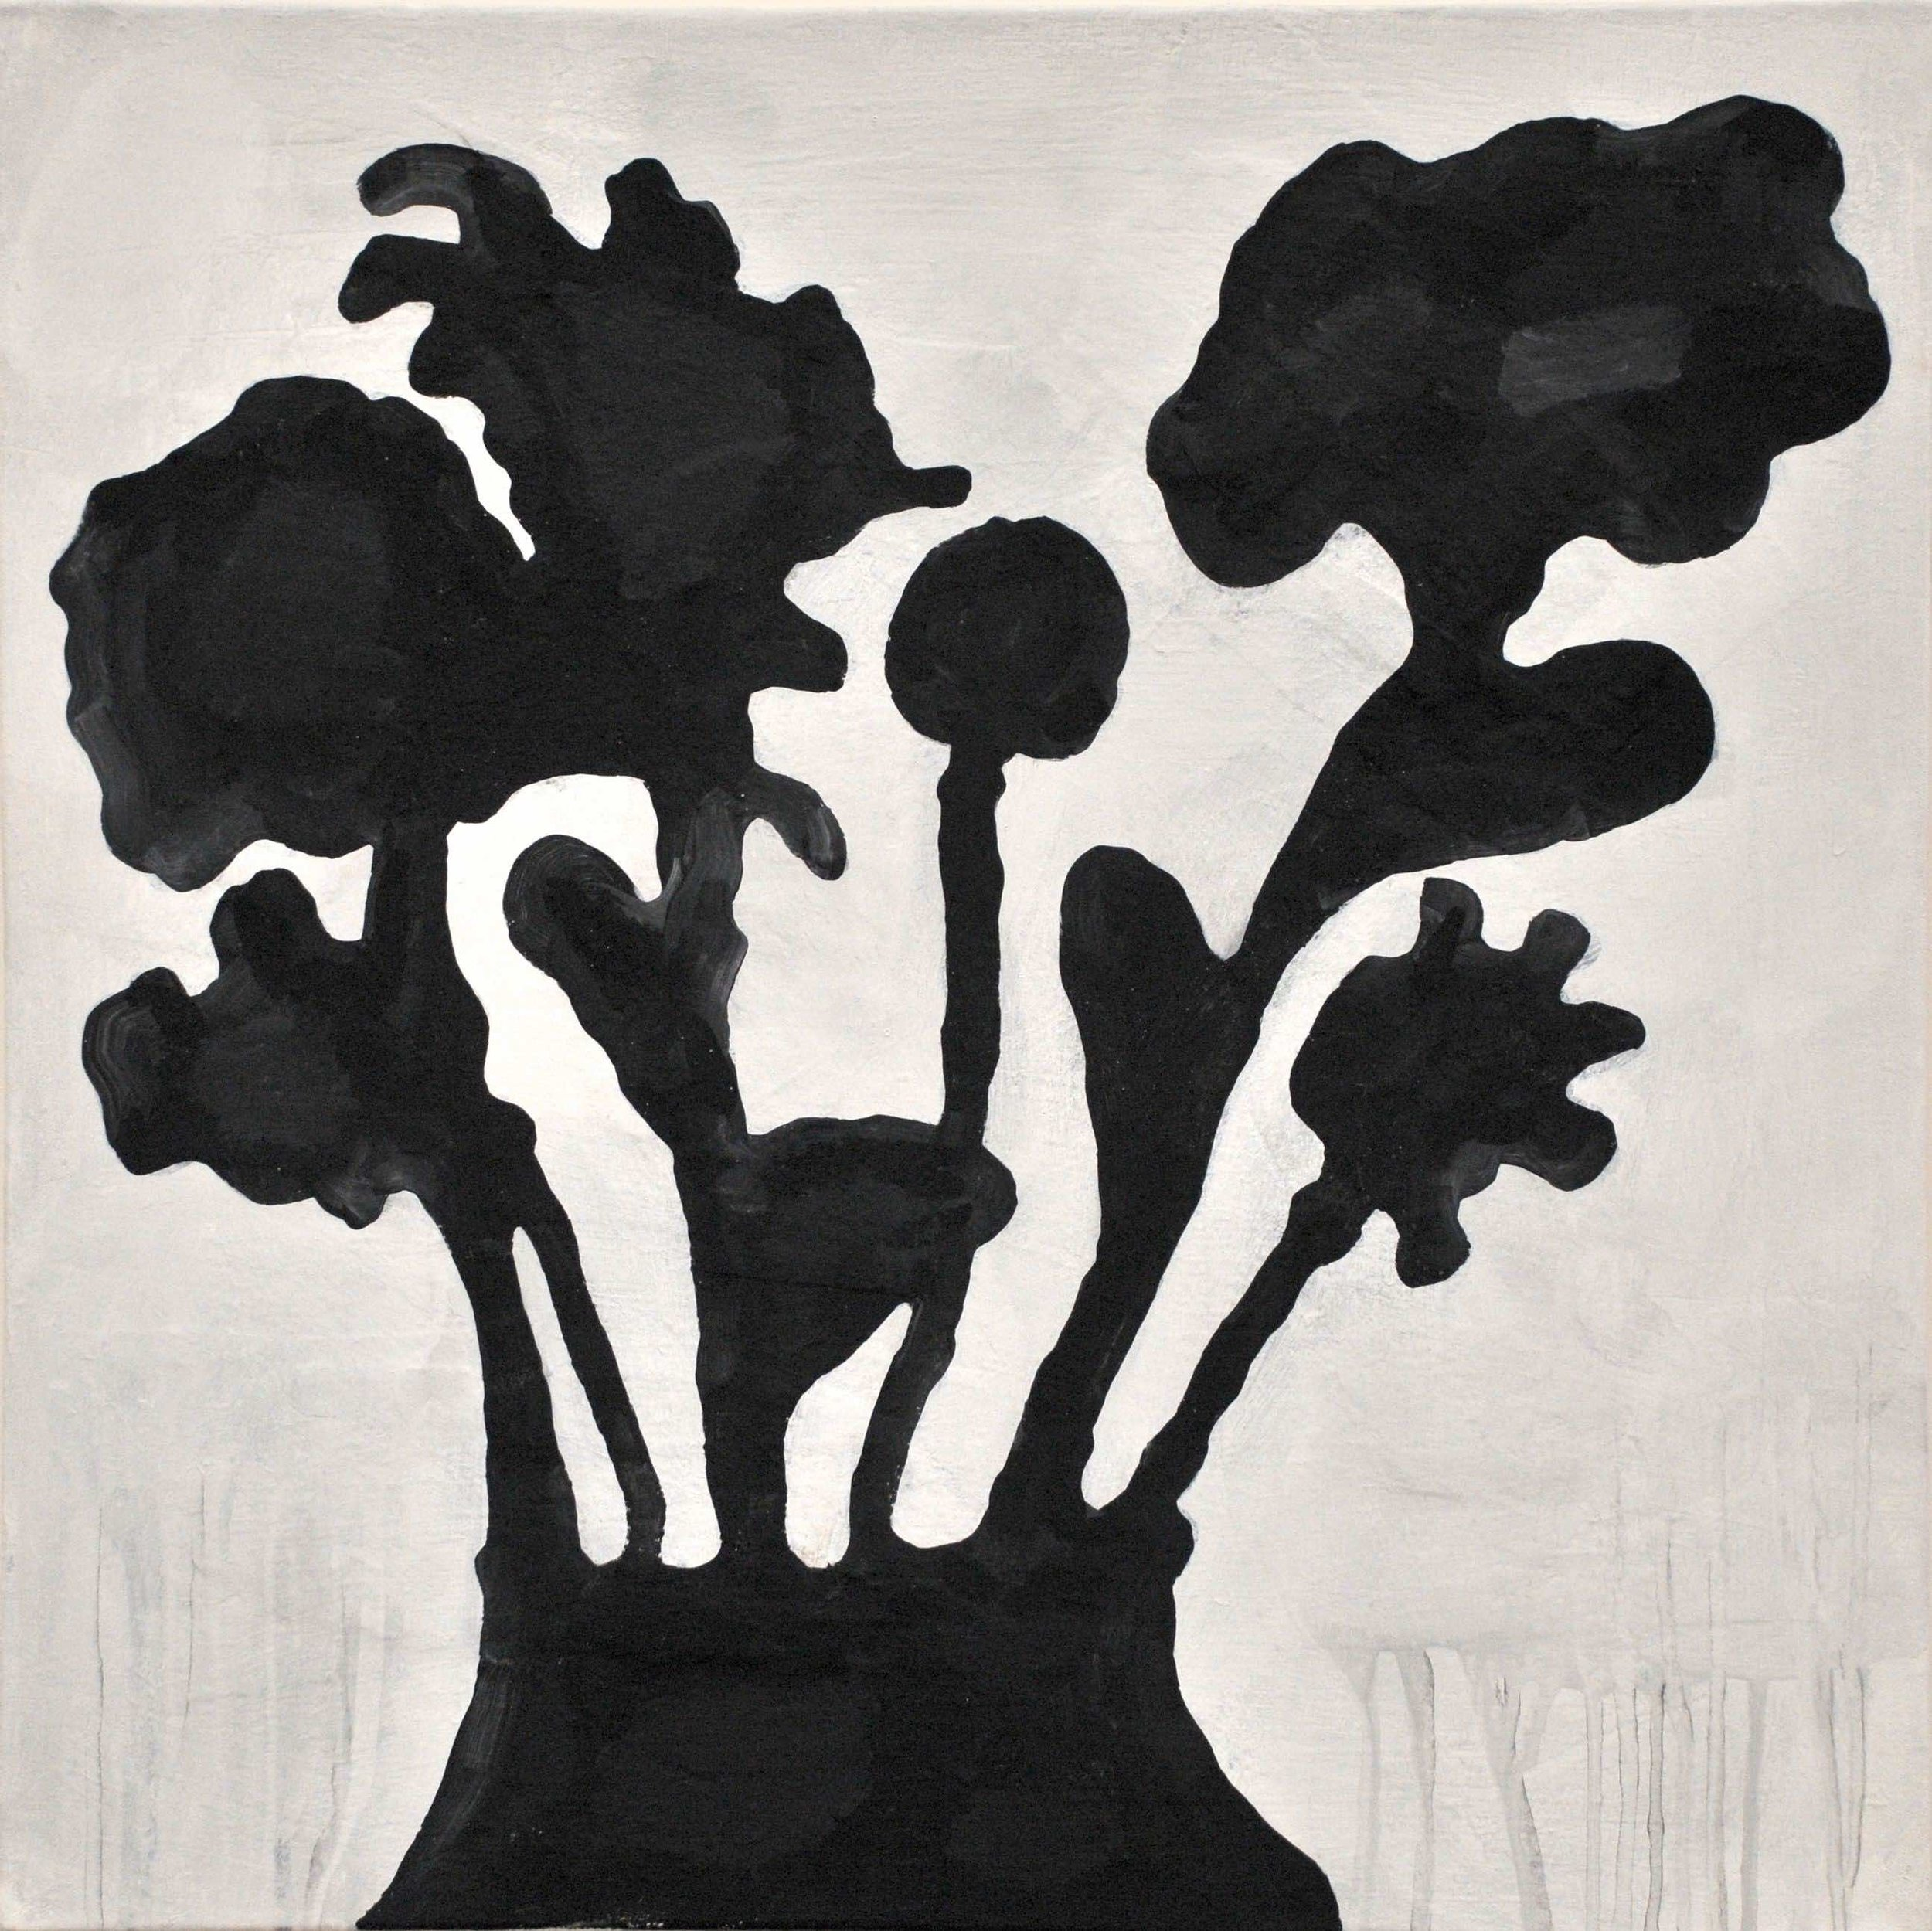 Donald Baechler   Black Flowers   2018  acrylic and fabric collage on canvas  24 x 24 in / 61 x 61 cm